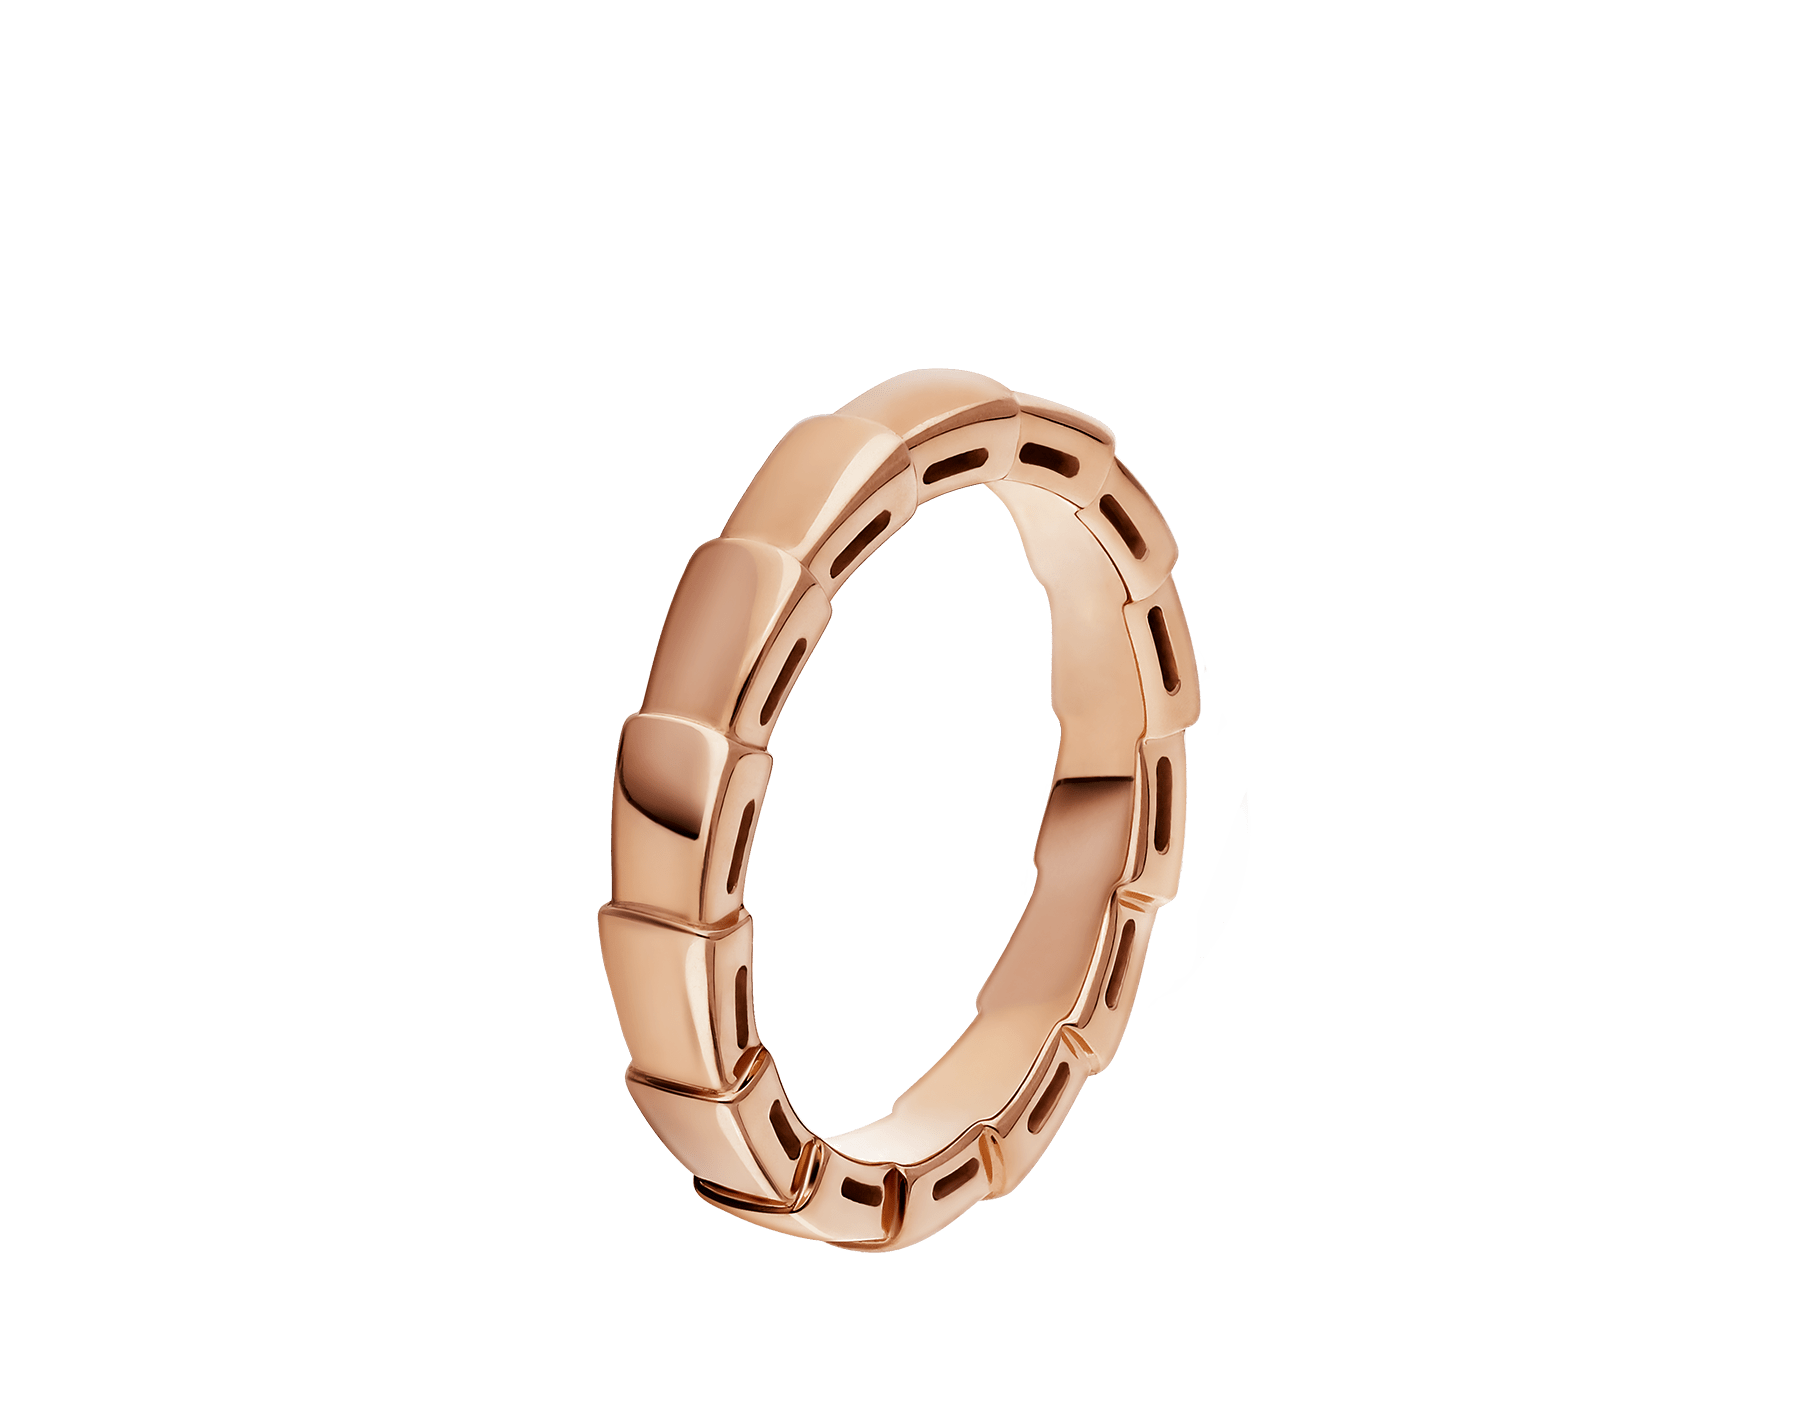 Serpenti wedding band in 18 kt rose gold. AN856868 image 1